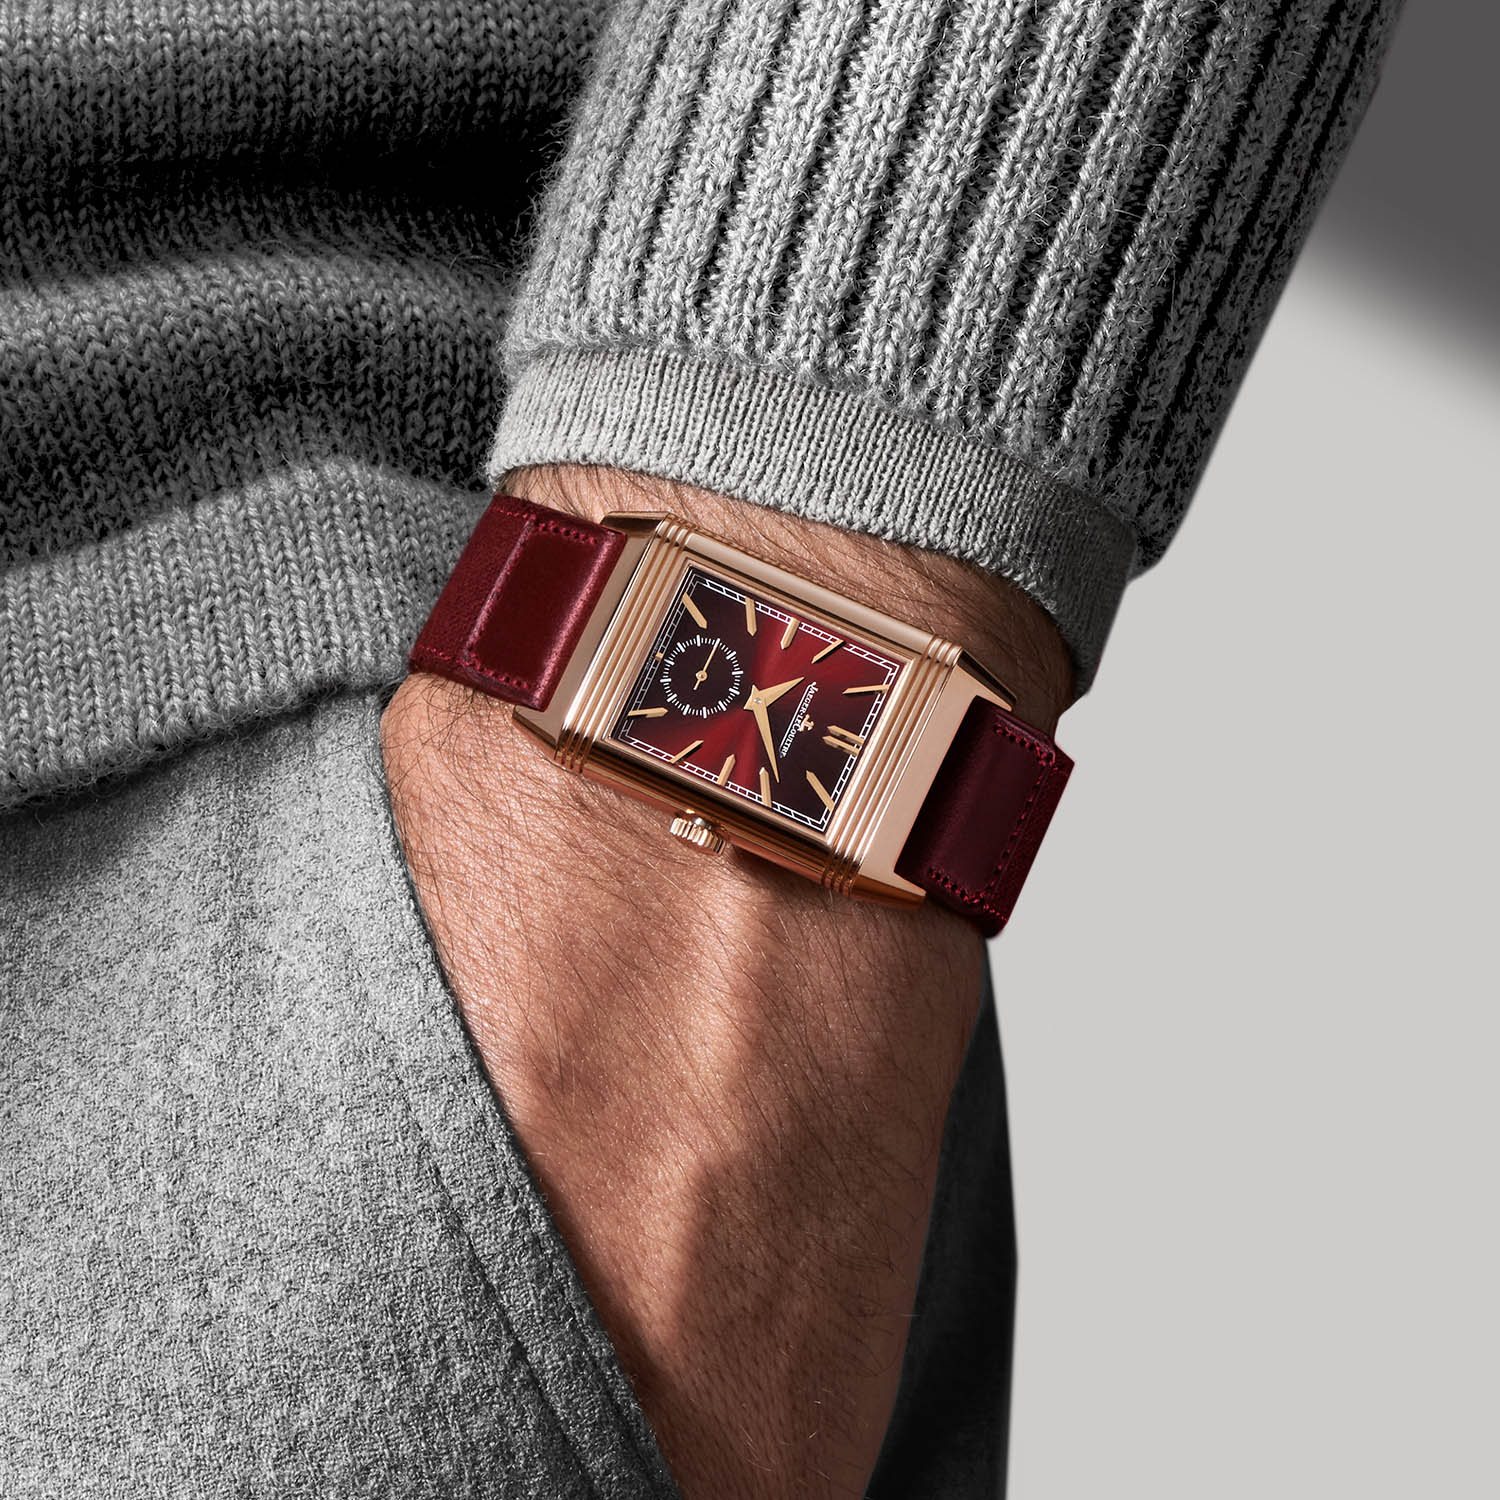 Jaeger LeCoultre Reverso Tribute DuoFace Fagliano Burgundy Limited 14